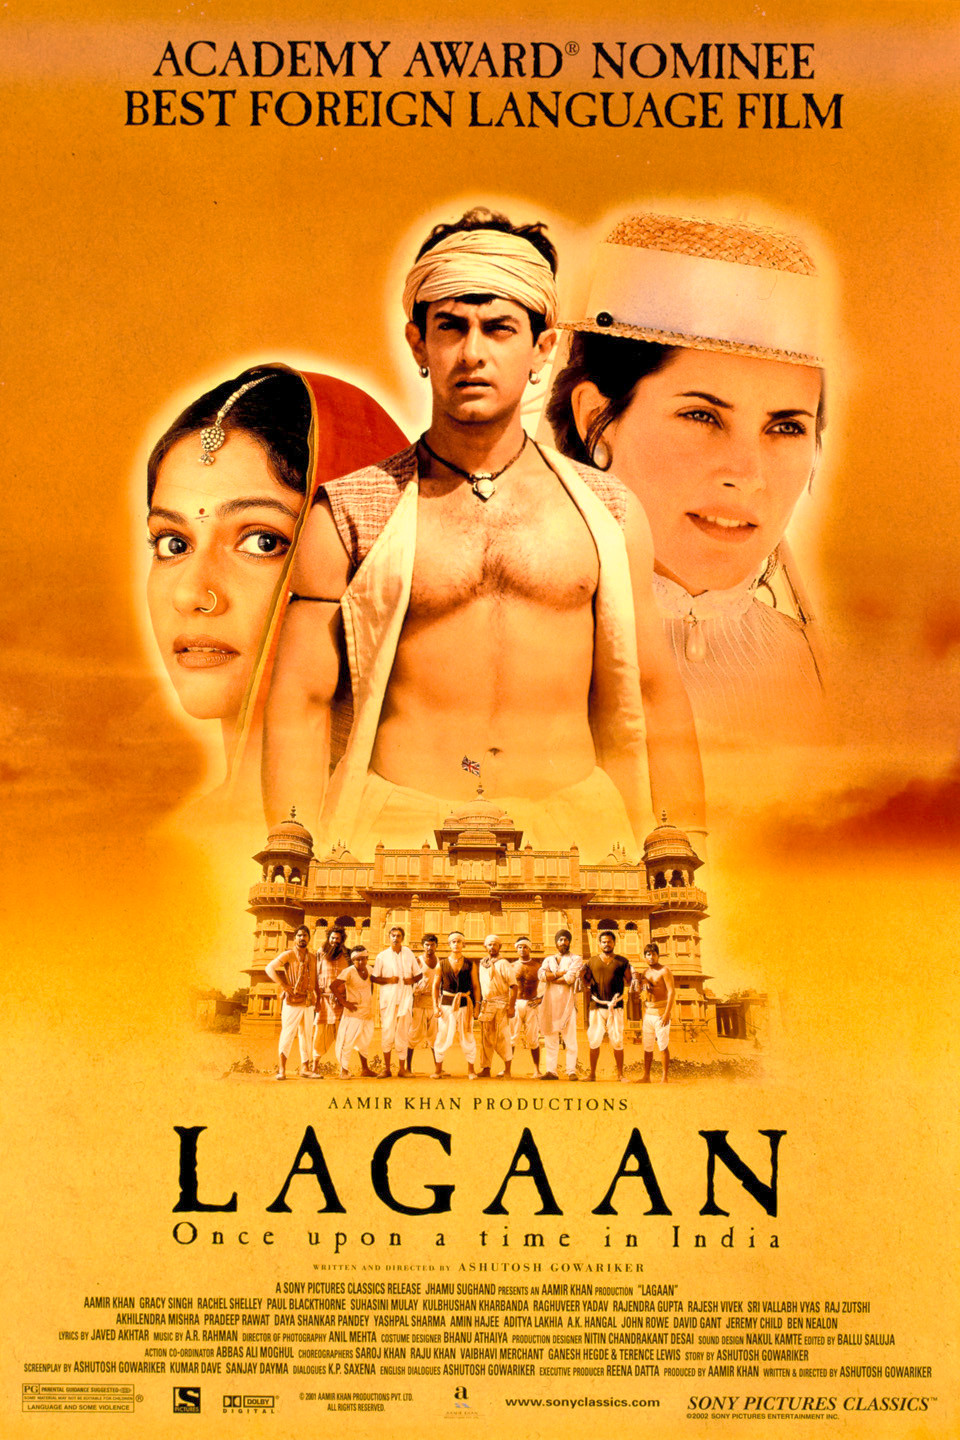 LAGAAN ARBA KARTĄ INDIJOJE (2001) / LAGAAN: ONCE UPON A TIME IN INDIA